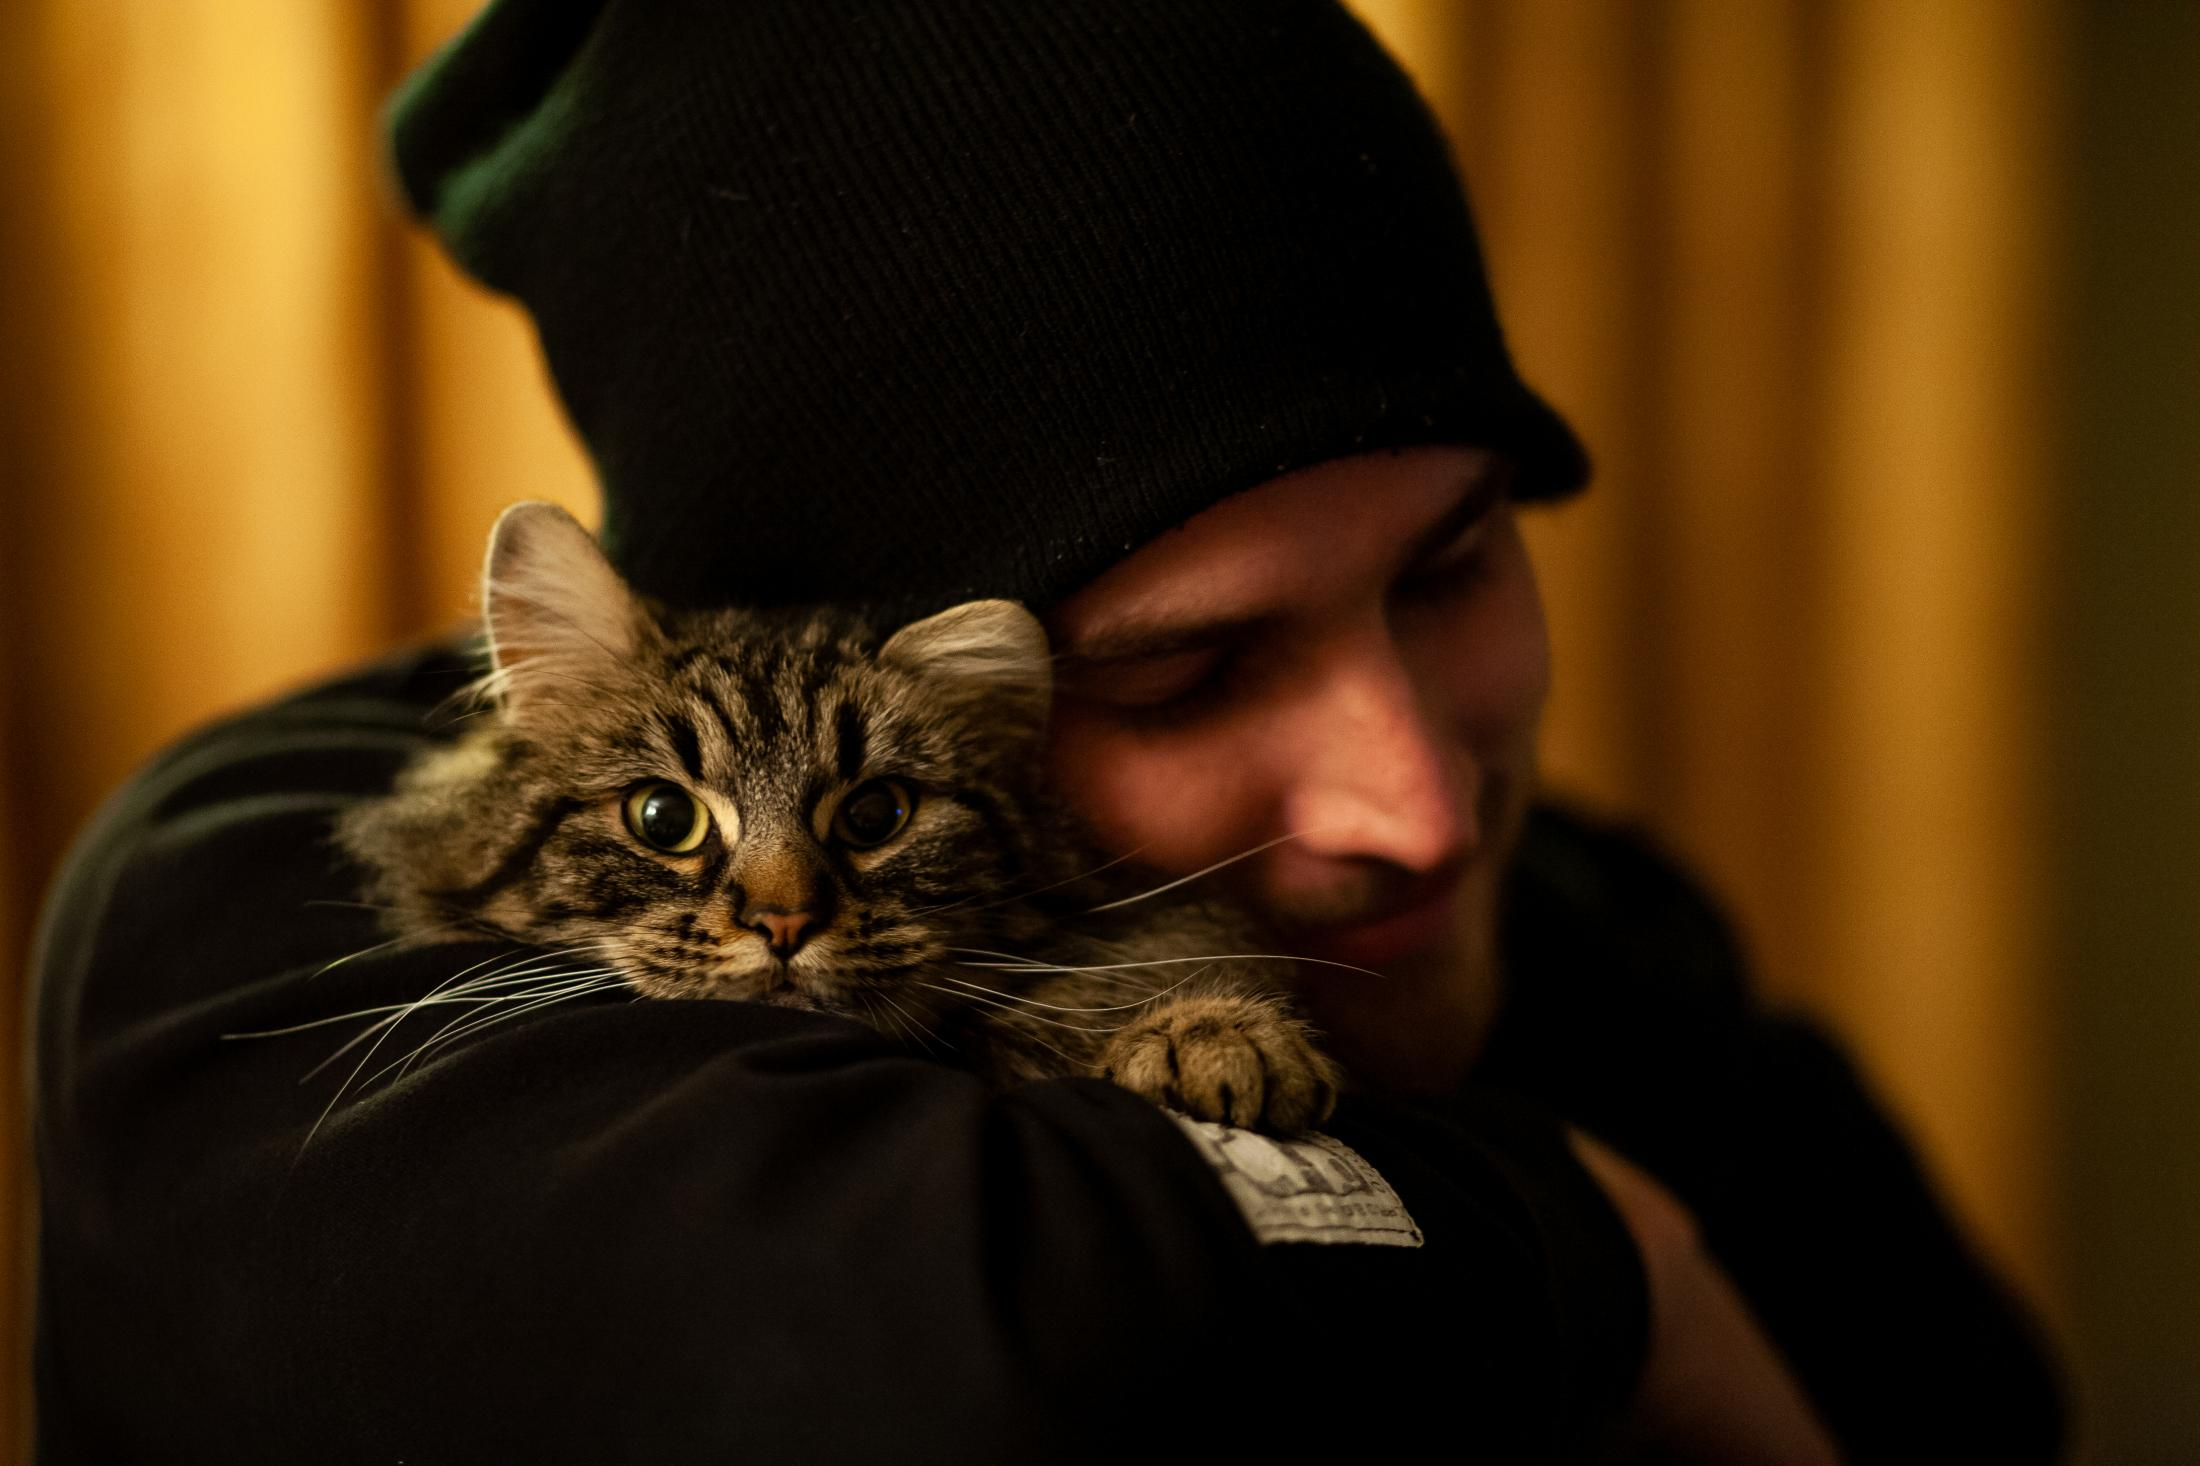 2/28/14- North Dakota - Adam Braun holds a stray cat tight that he rescued from the winter blizzard. The cat served Adam as a companion during the lonely days working in Wolf Point, Montana.